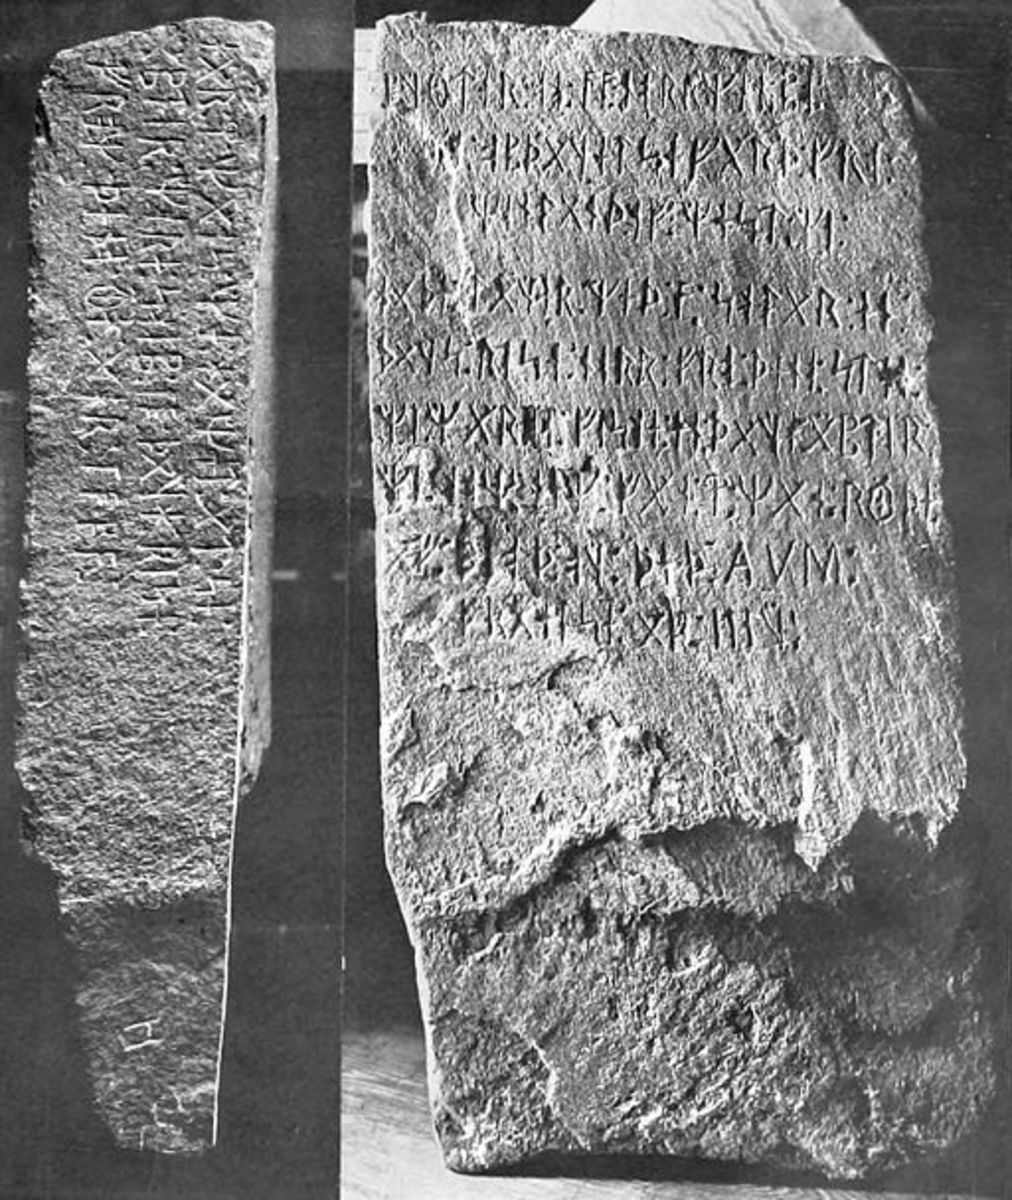 The Kensington Runestone photographed in 1910